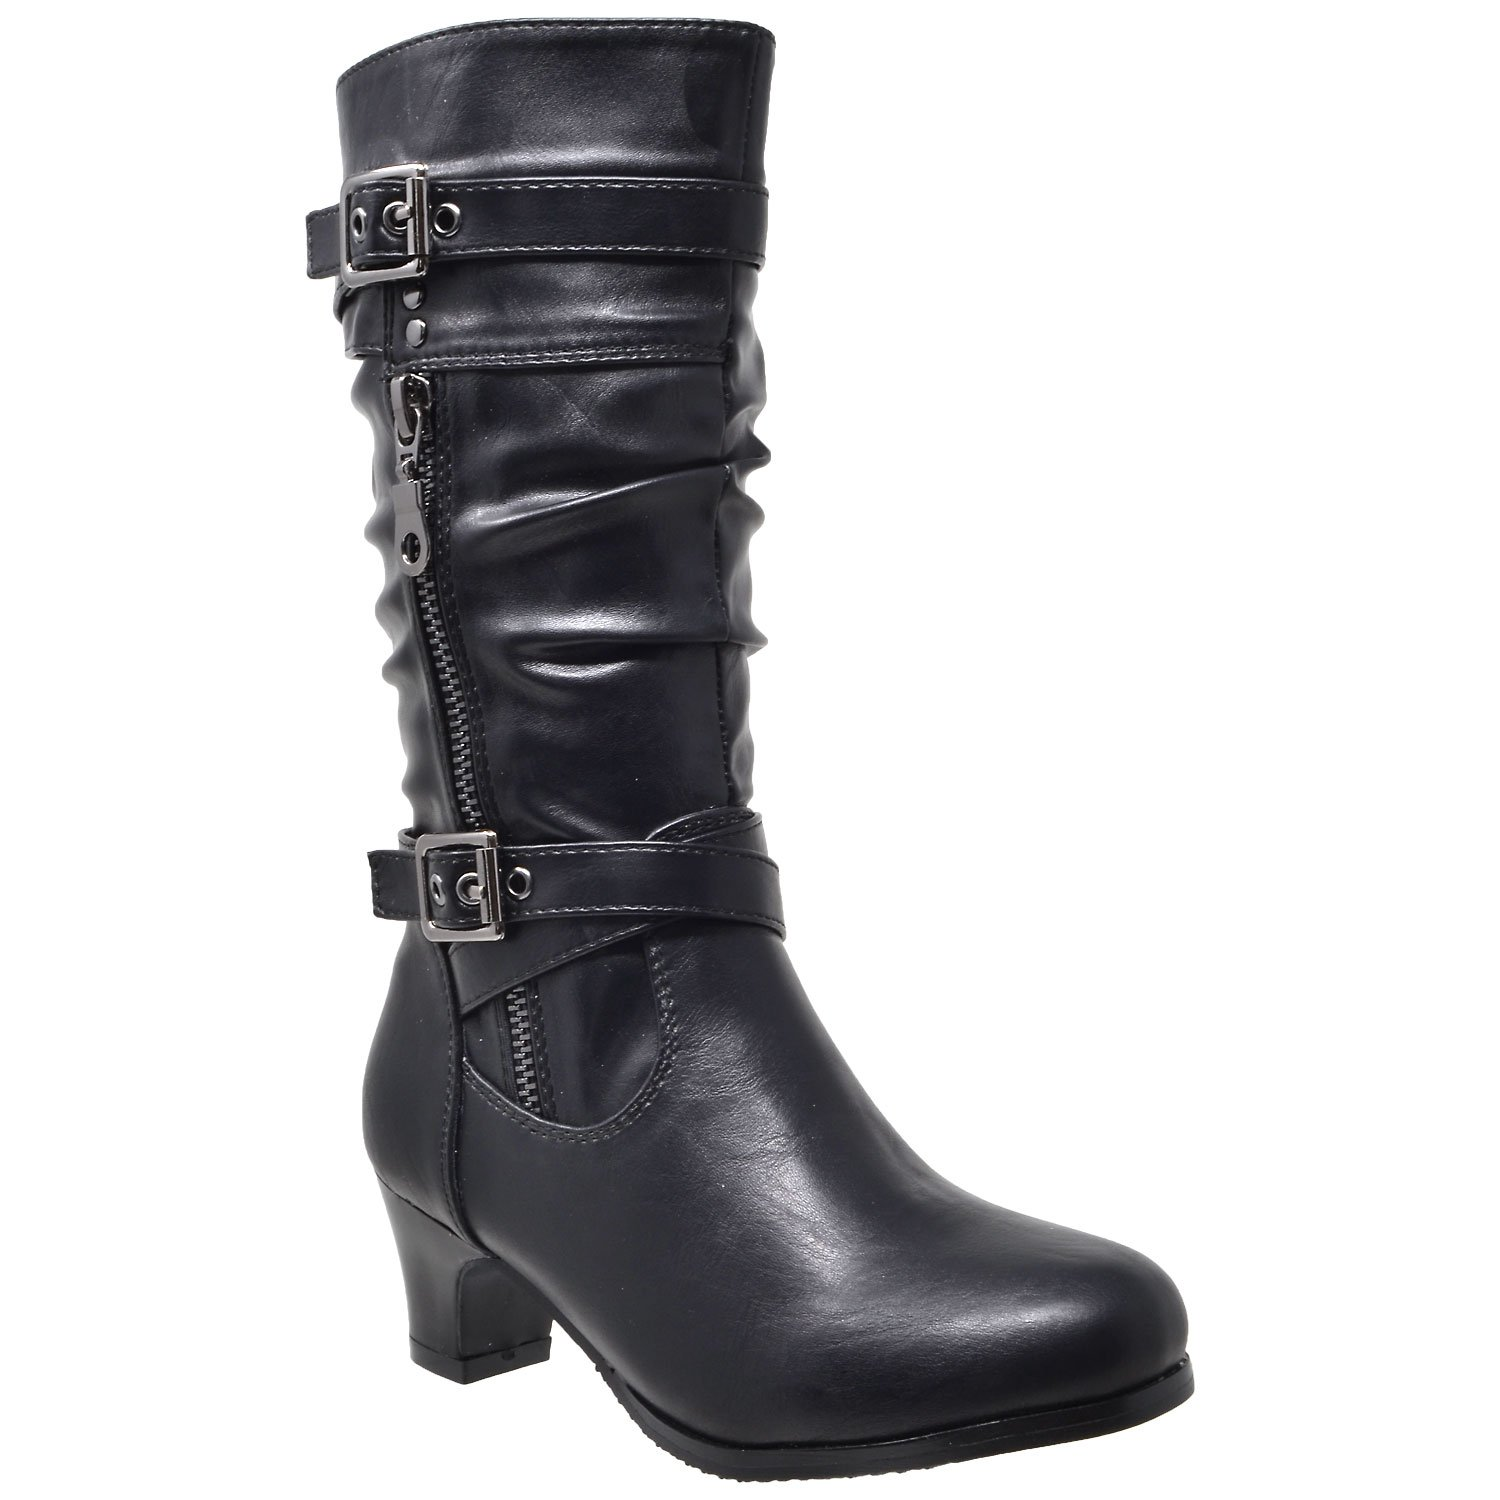 Generation Y Kids Girls Knee High Boots Ruched Faux Leather Strappy Buckle Zip Accent Low Heel Shoes Black SZ 12 Toddler